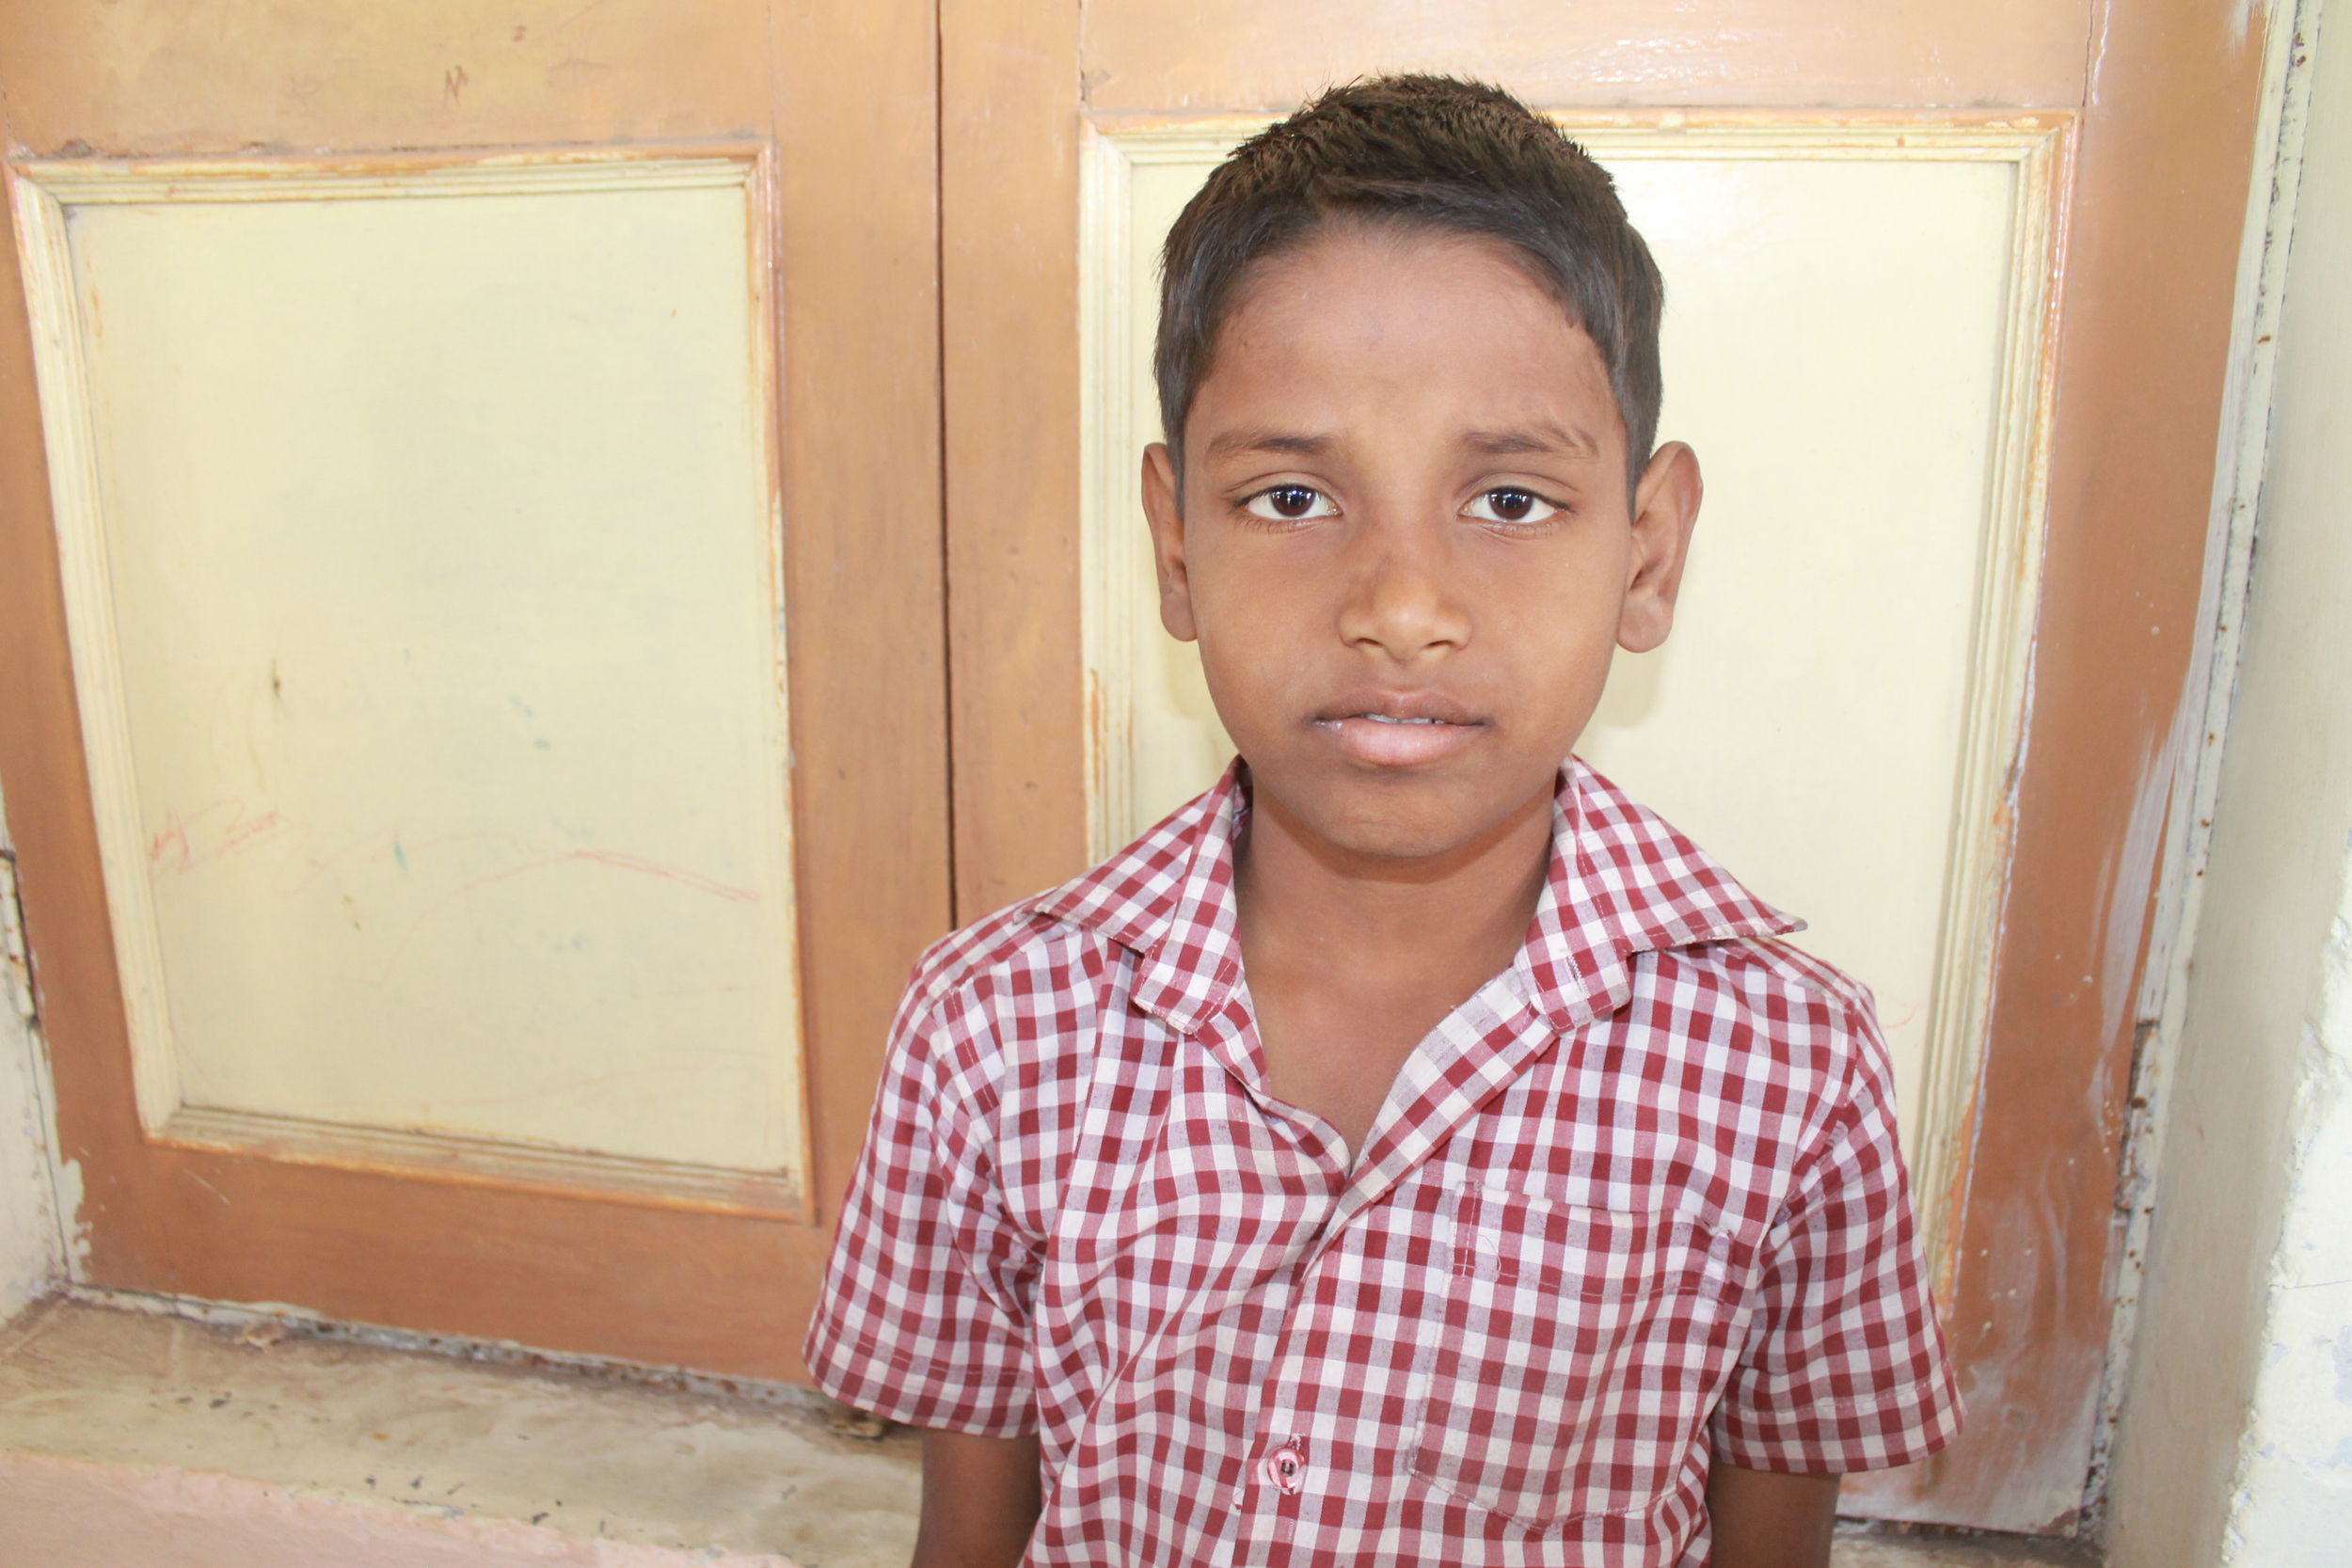 Mahesh, 8 years old